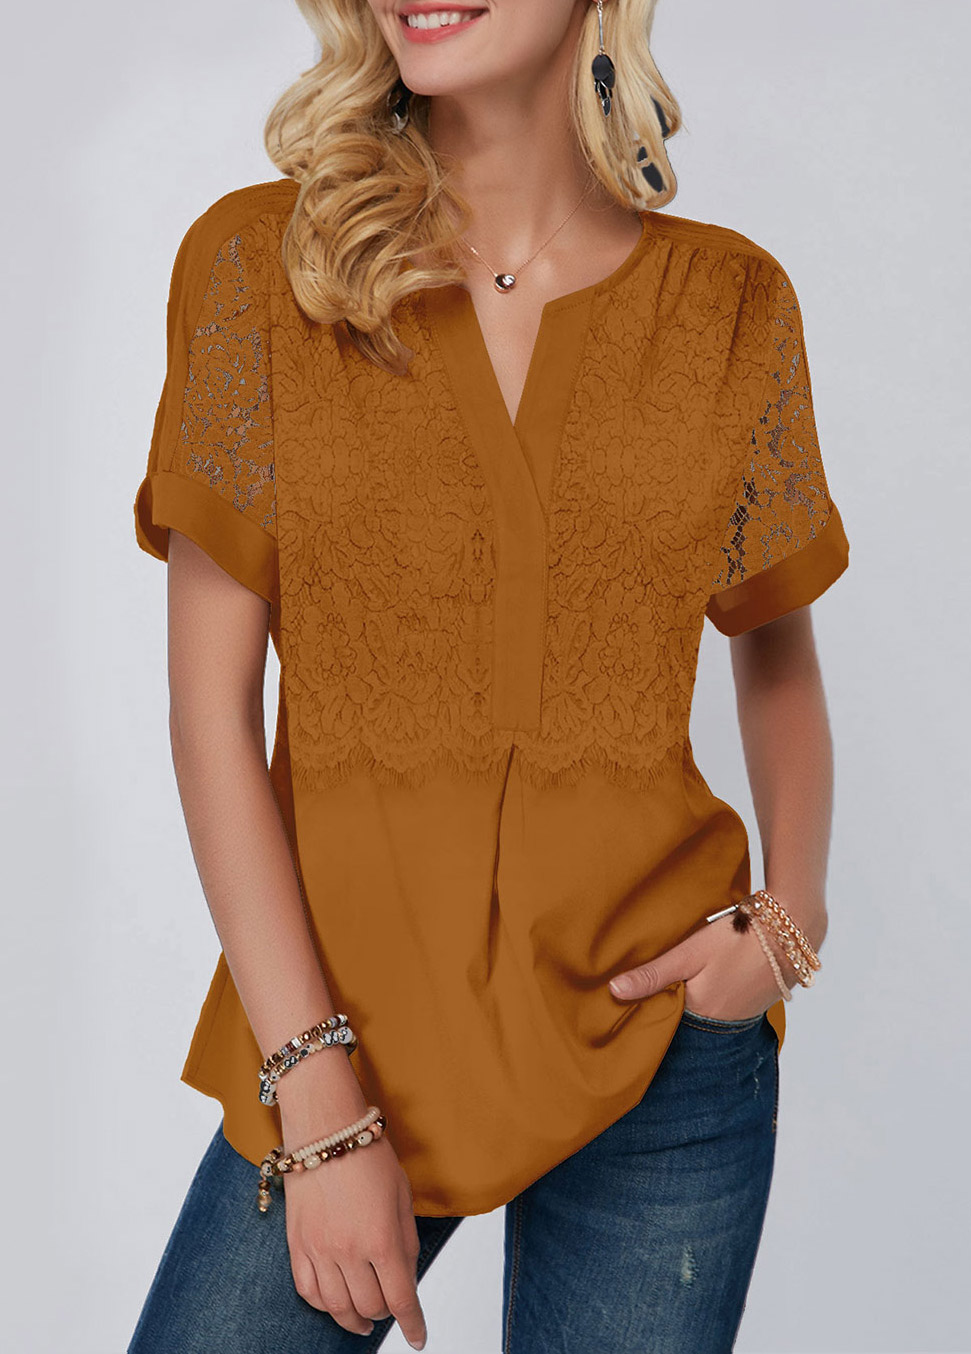 Short Sleeve Lace Panel Yellow Blouse